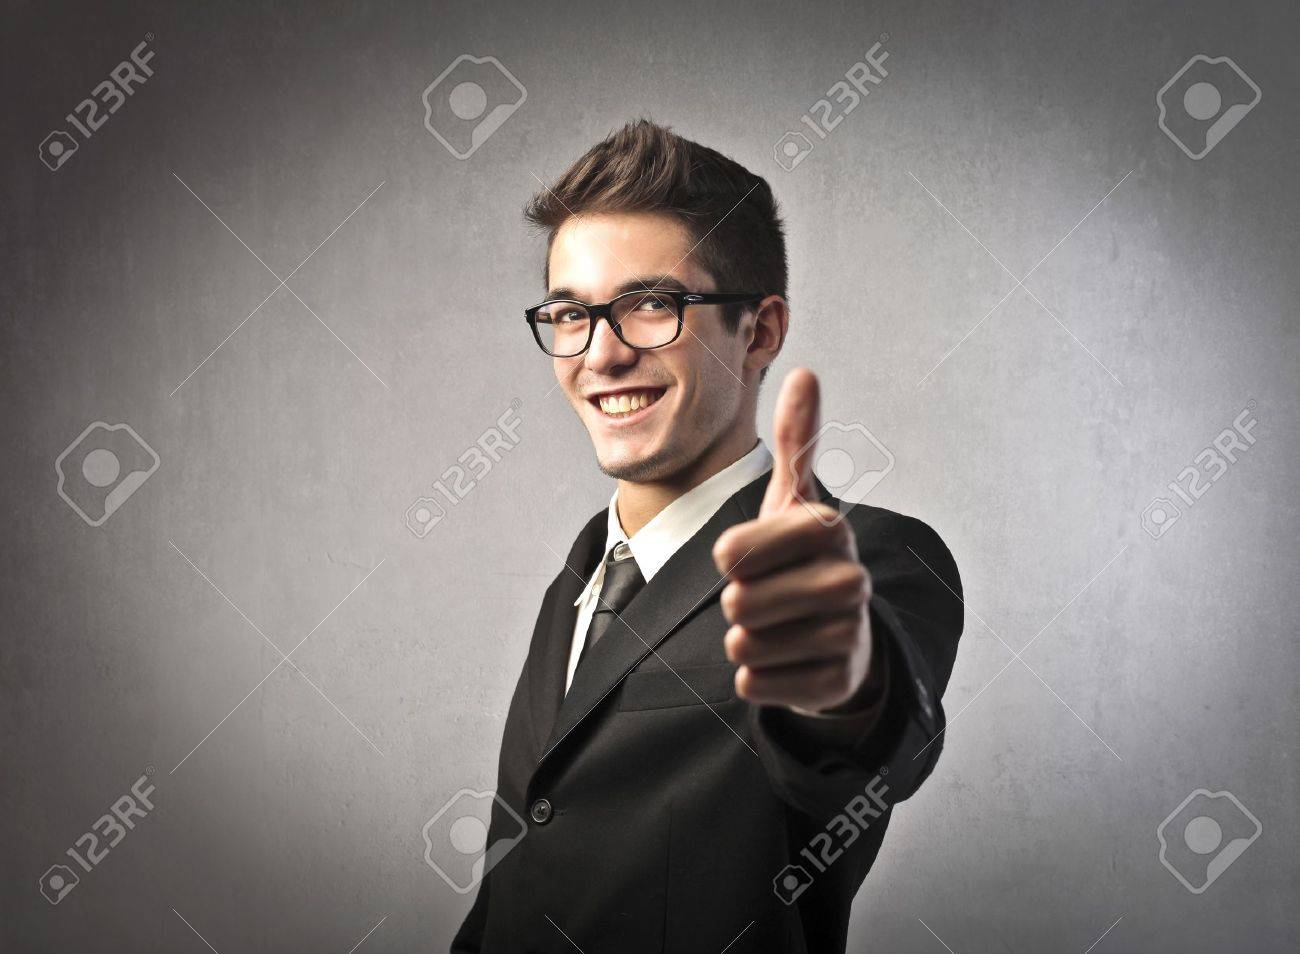 Smiling businessman with thumbs up Stock Photo - 10916941